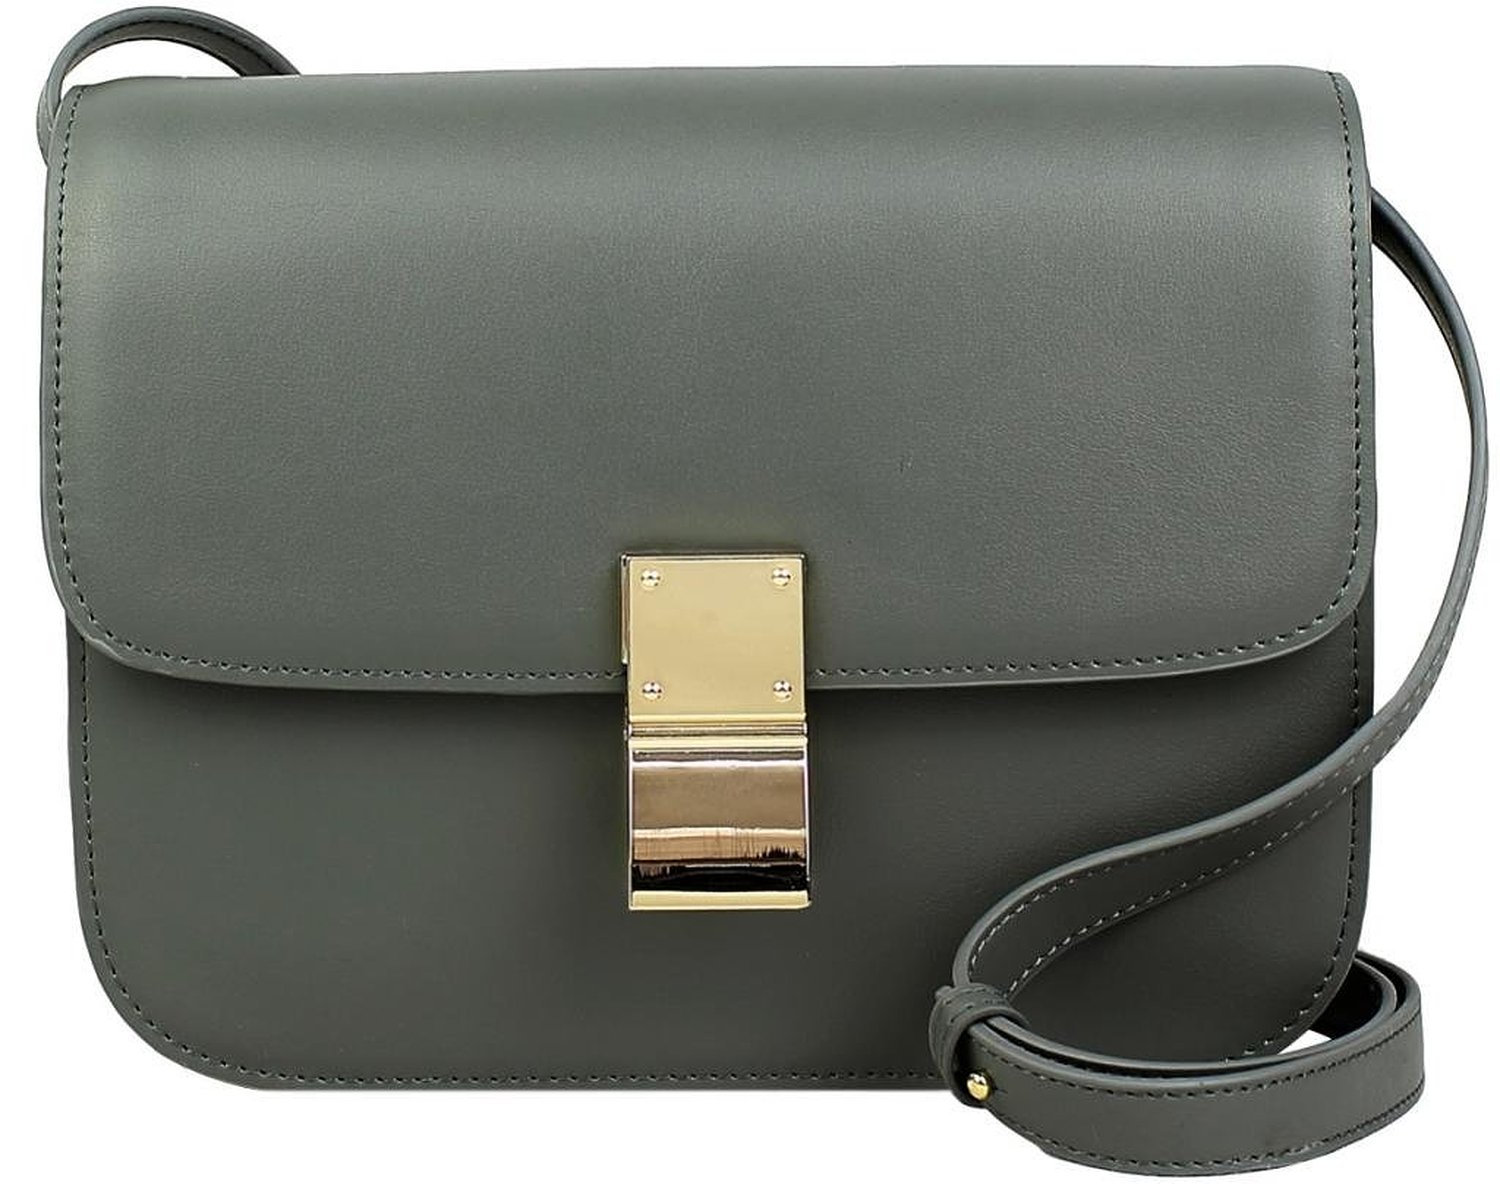 834fdeebe678 Lush Leather Boxy Shoulder Grey Bag  Handbags  Amazon.com